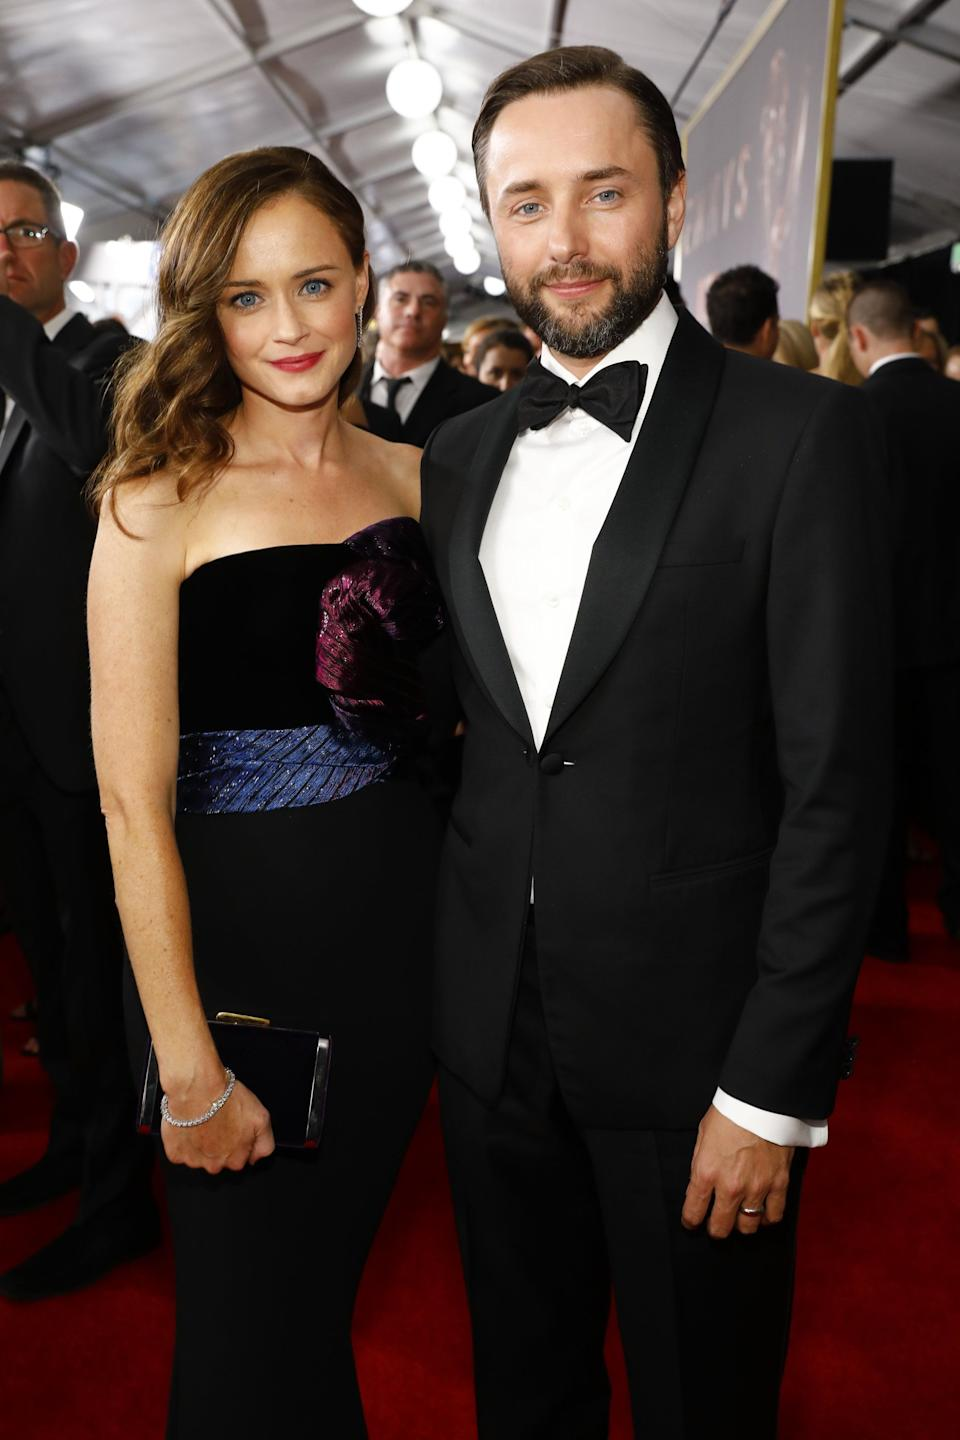 """Gilmore Girls"" actress <a href=""https://www.huffpost.com/entertainment/topic/alexis-bledel"" target=""_blank"" rel=""noopener noreferrer"">Alexis Bledel </a>married Vincent Kartheiser <a href=""https://www.hollywoodreporter.com/news/alexis-bledel-marries-vincent-kartheiser-723835"" target=""_blank"" rel=""noopener noreferrer"">in June 2014</a> after meeting on the set of ""Mad Men,"" on which he co-starred.<br /><br><br><br />The very private pair welcomed their first child, a son, in the <a href=""https://people.com/parents/vincent-kartheiser-alexis-bledel-welcome-son/"" target=""_blank"" rel=""noopener noreferrer"">fall of 2015</a>. While they rarely speak about their marriage, their famous friends have gushed about them as a couple. <br /><br><br><br />""They are such a yin and yang,"" said Elisabeth Moss -- another ""Mad Men"" cast member and Bledel's co-star on ""The Handmaid's Tale."" ""I've known Vinny for 12 years and Alexis is just the sweetest. I've never seen Vincent like this. It is really cool."""